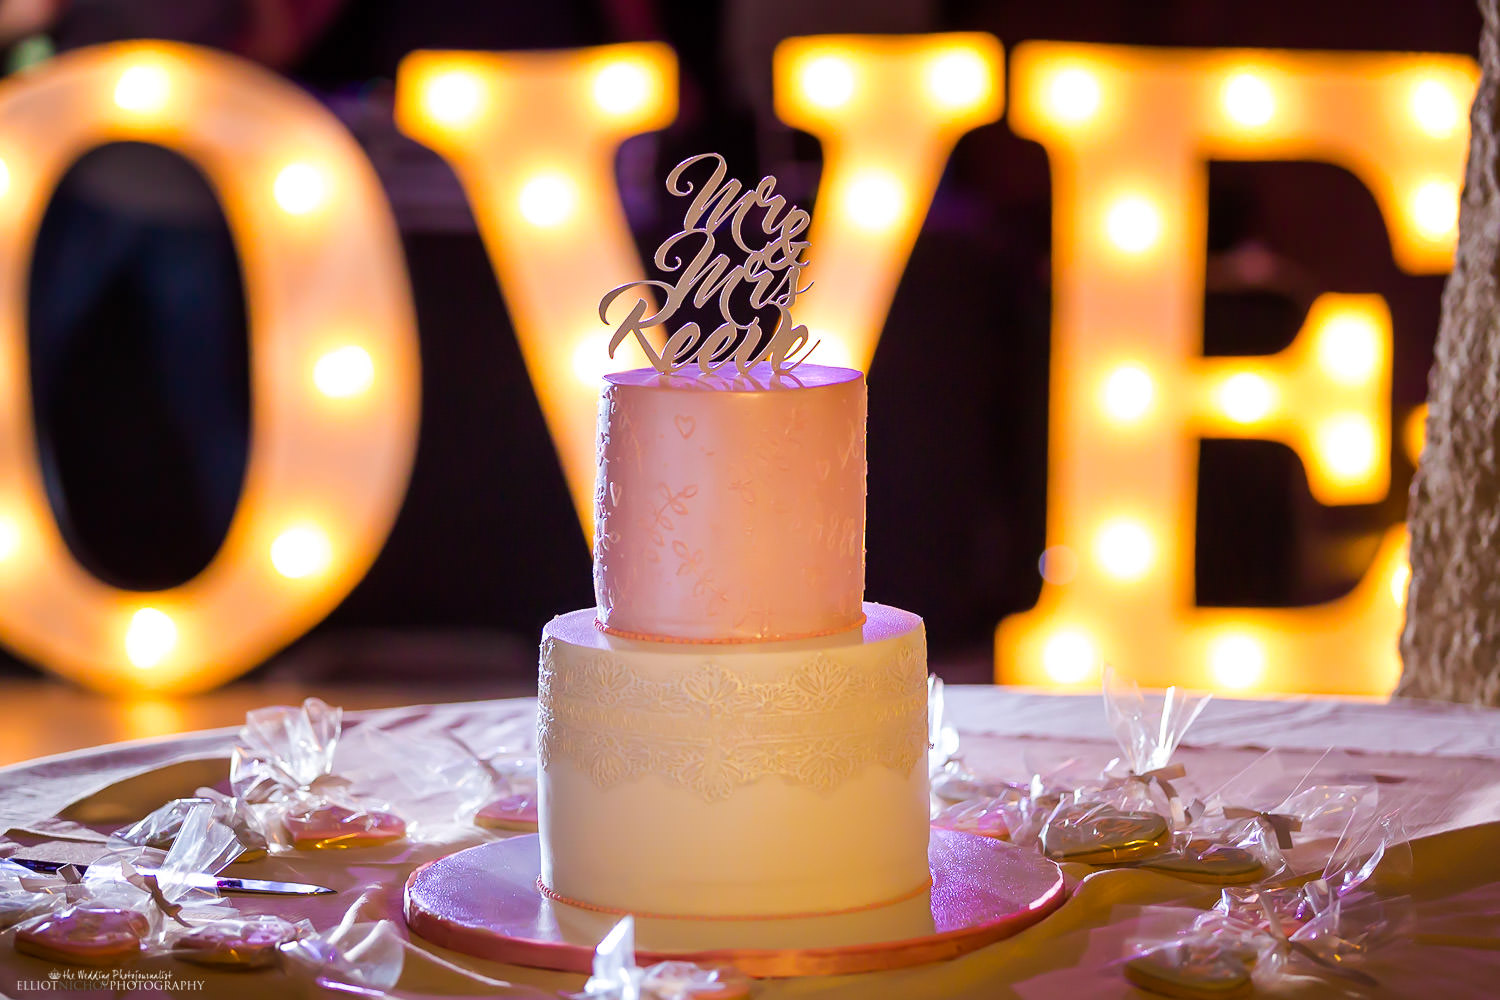 Wedding cake with Mr & Mrs wedding cake topper and love sign behind. Photo by Newcastle wedding photographer.